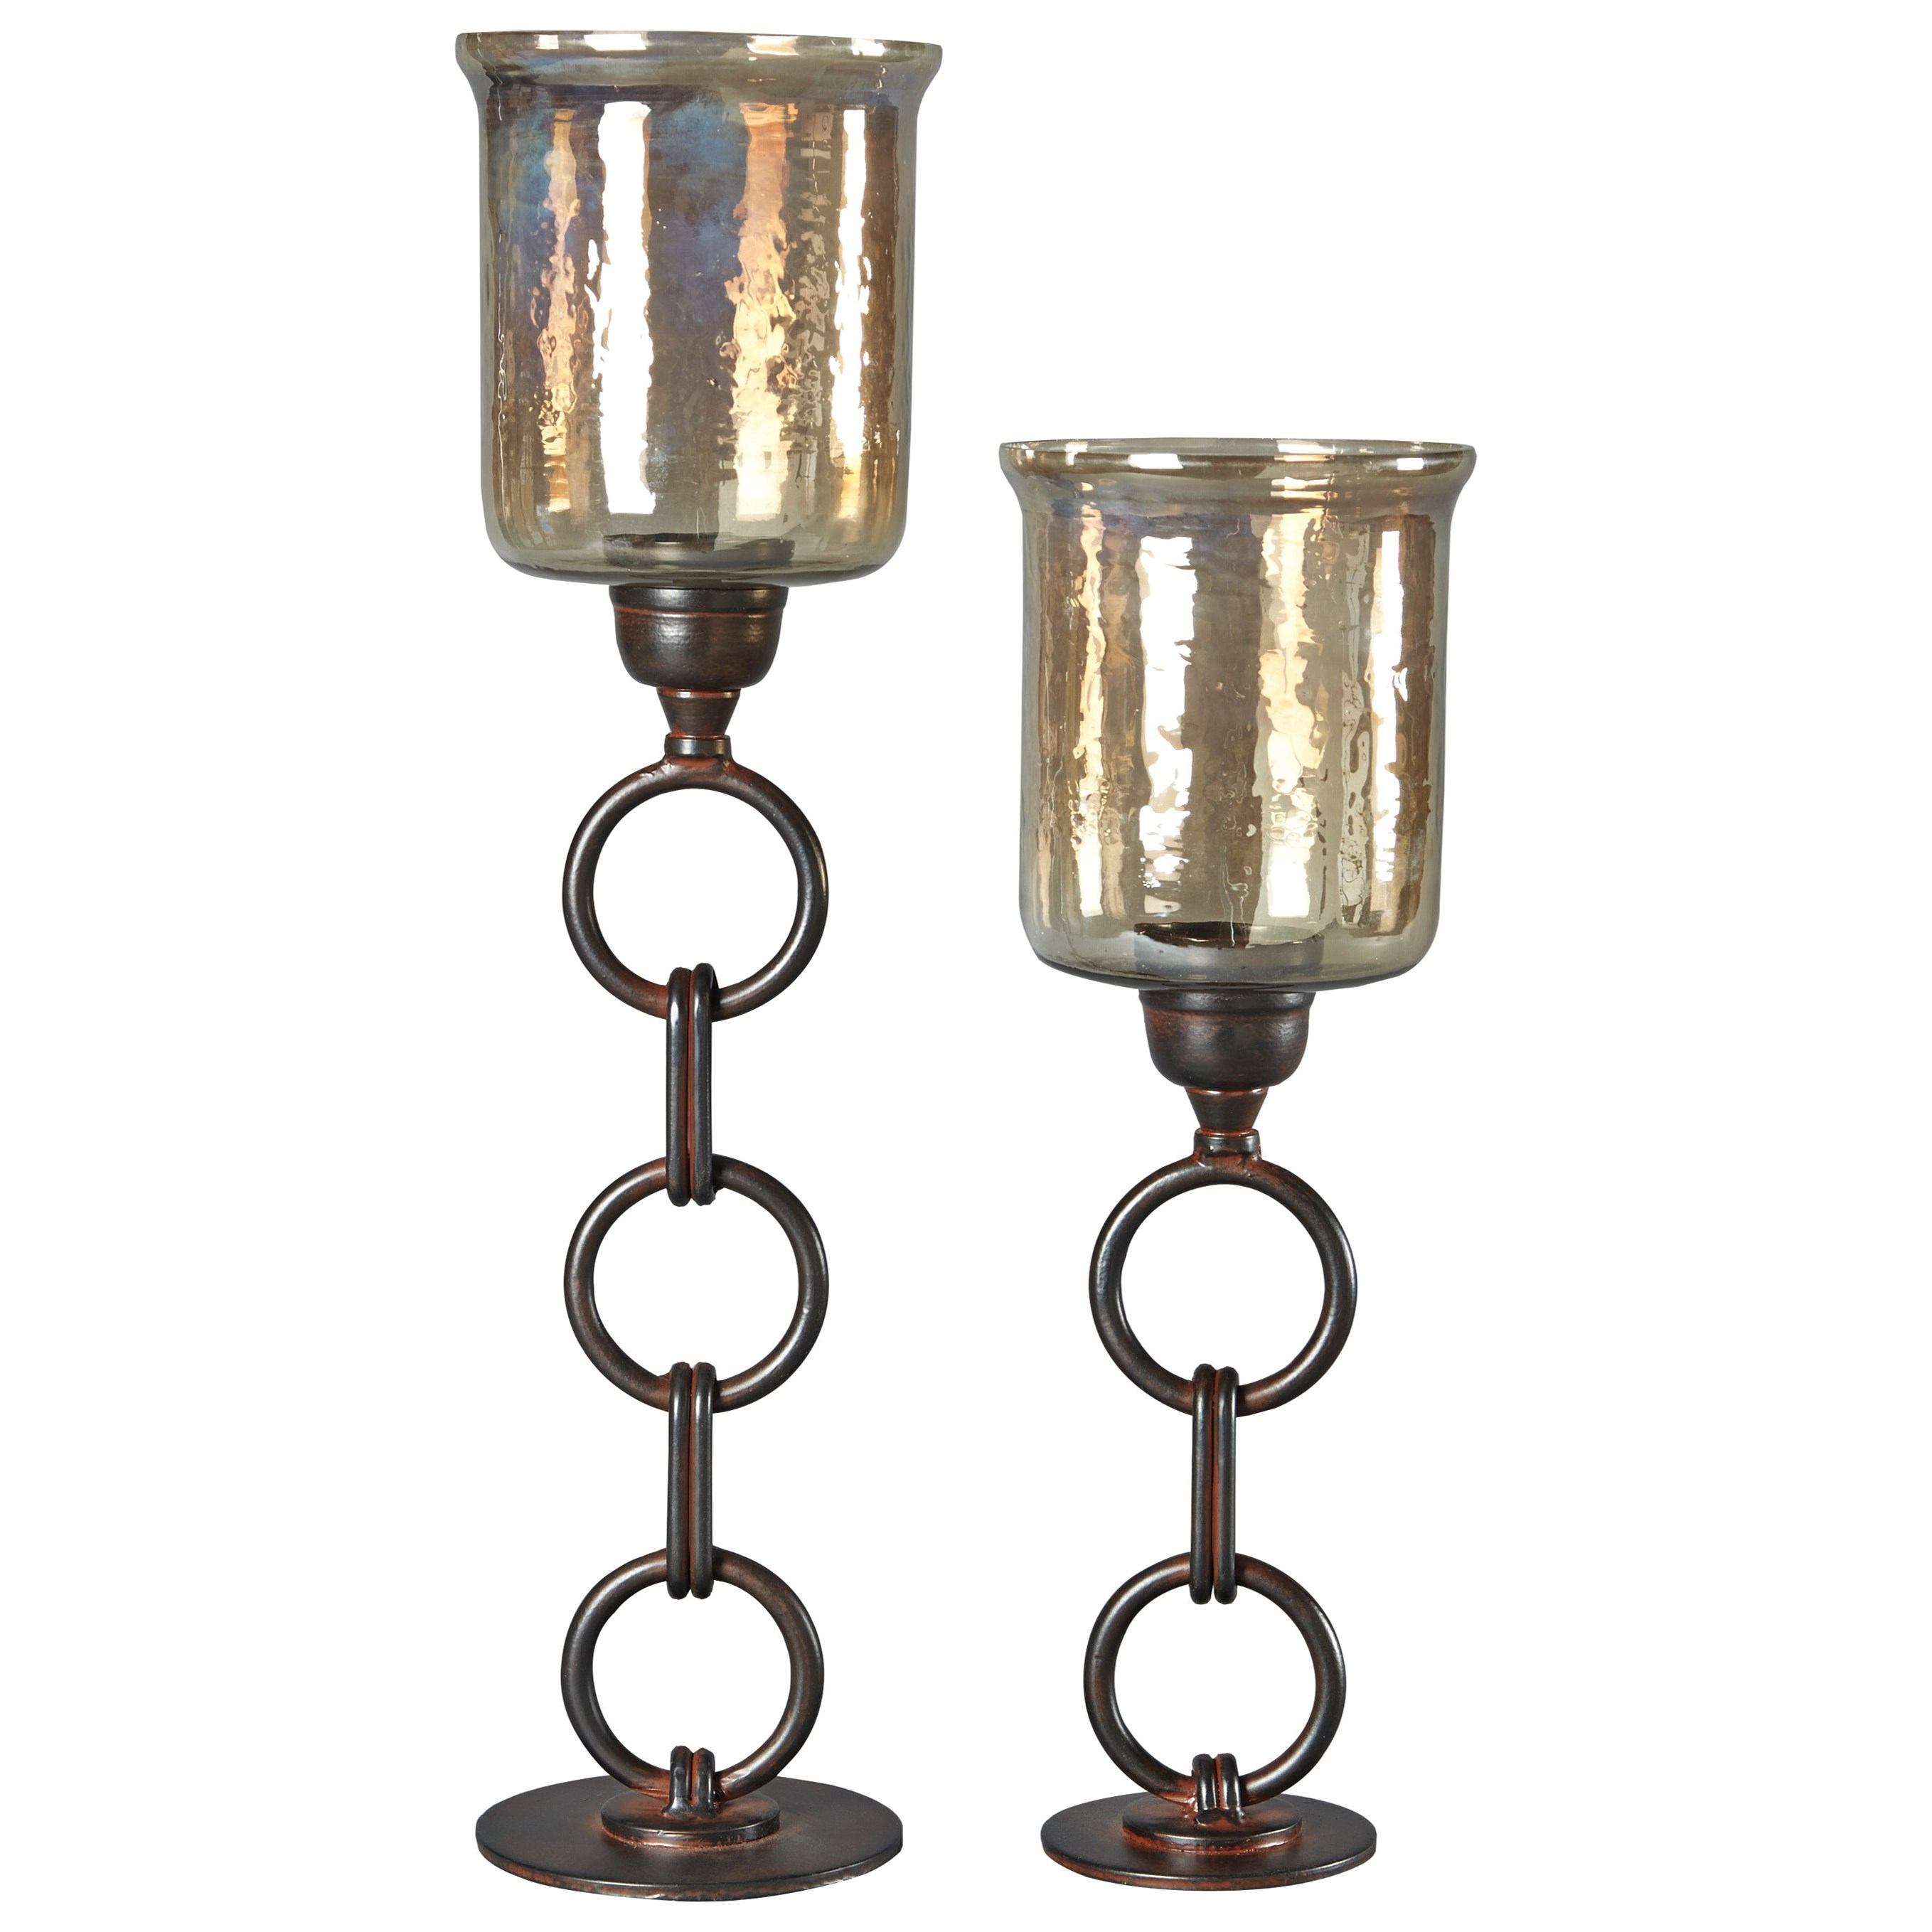 Signature Design by Ashley Accents Oana Bronze Finish Candle Holders, Set of 2 - Item Number: A2000202C